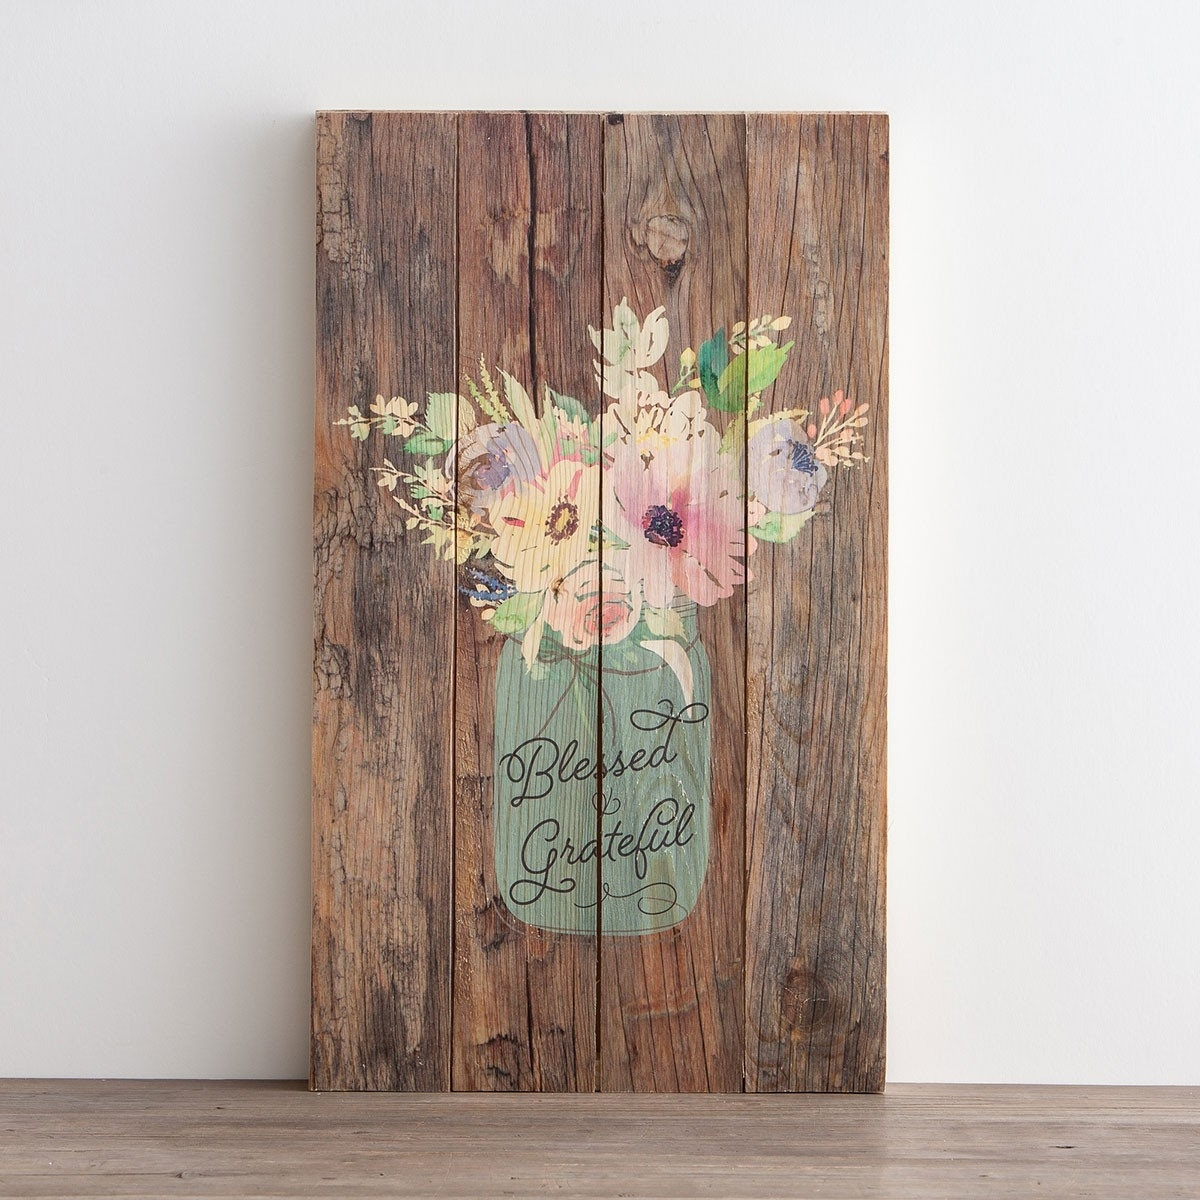 Blessed & Grateful – Plank Wall Art | Dayspring Within Most Up To Date Plank Wall Art (View 2 of 20)